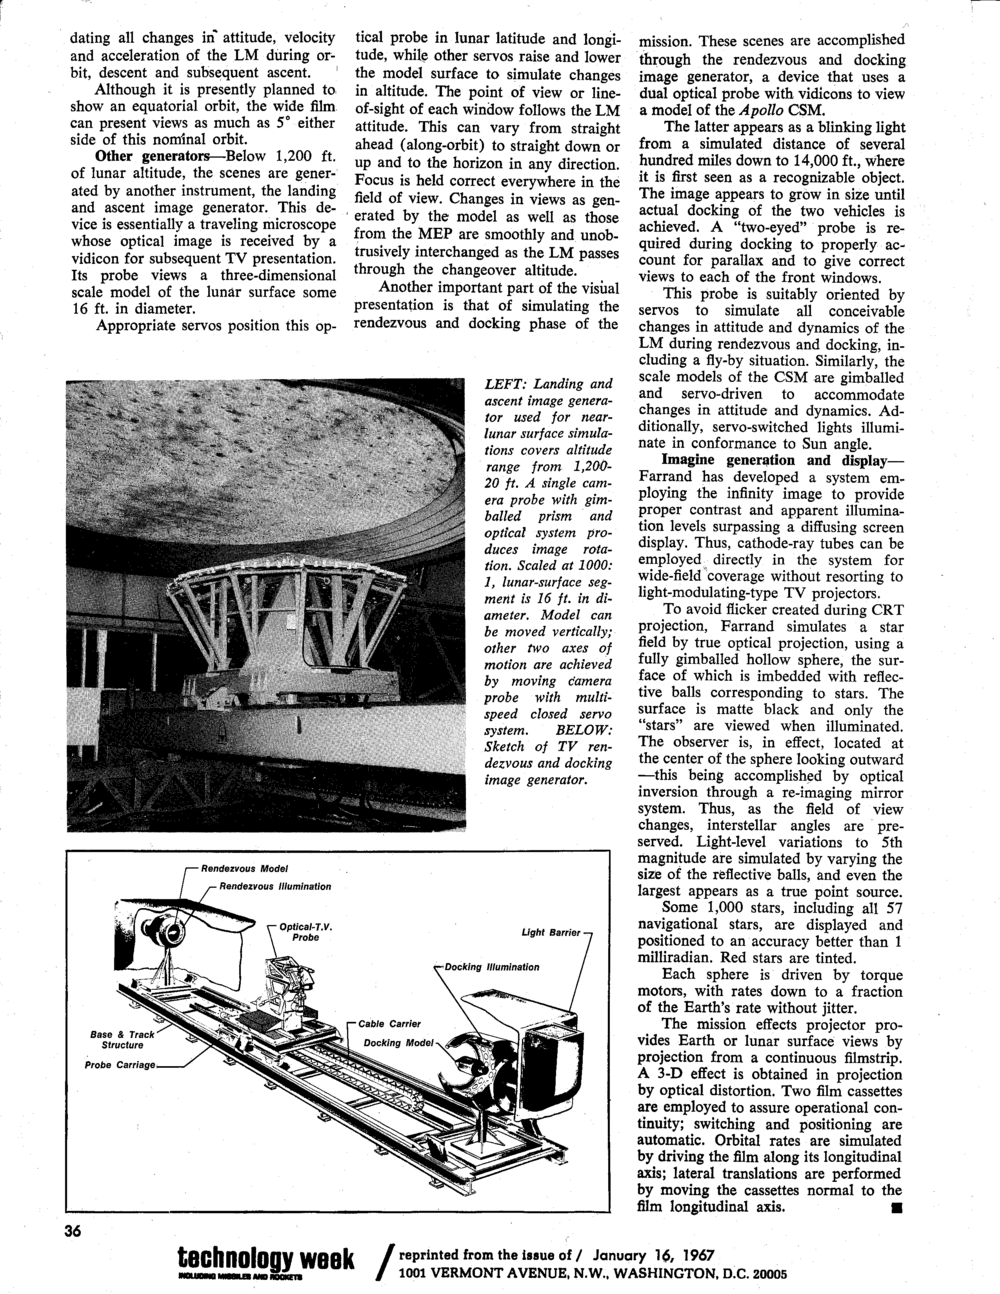 1967-01-12   Technology Week LMS Optics_Page_2.png